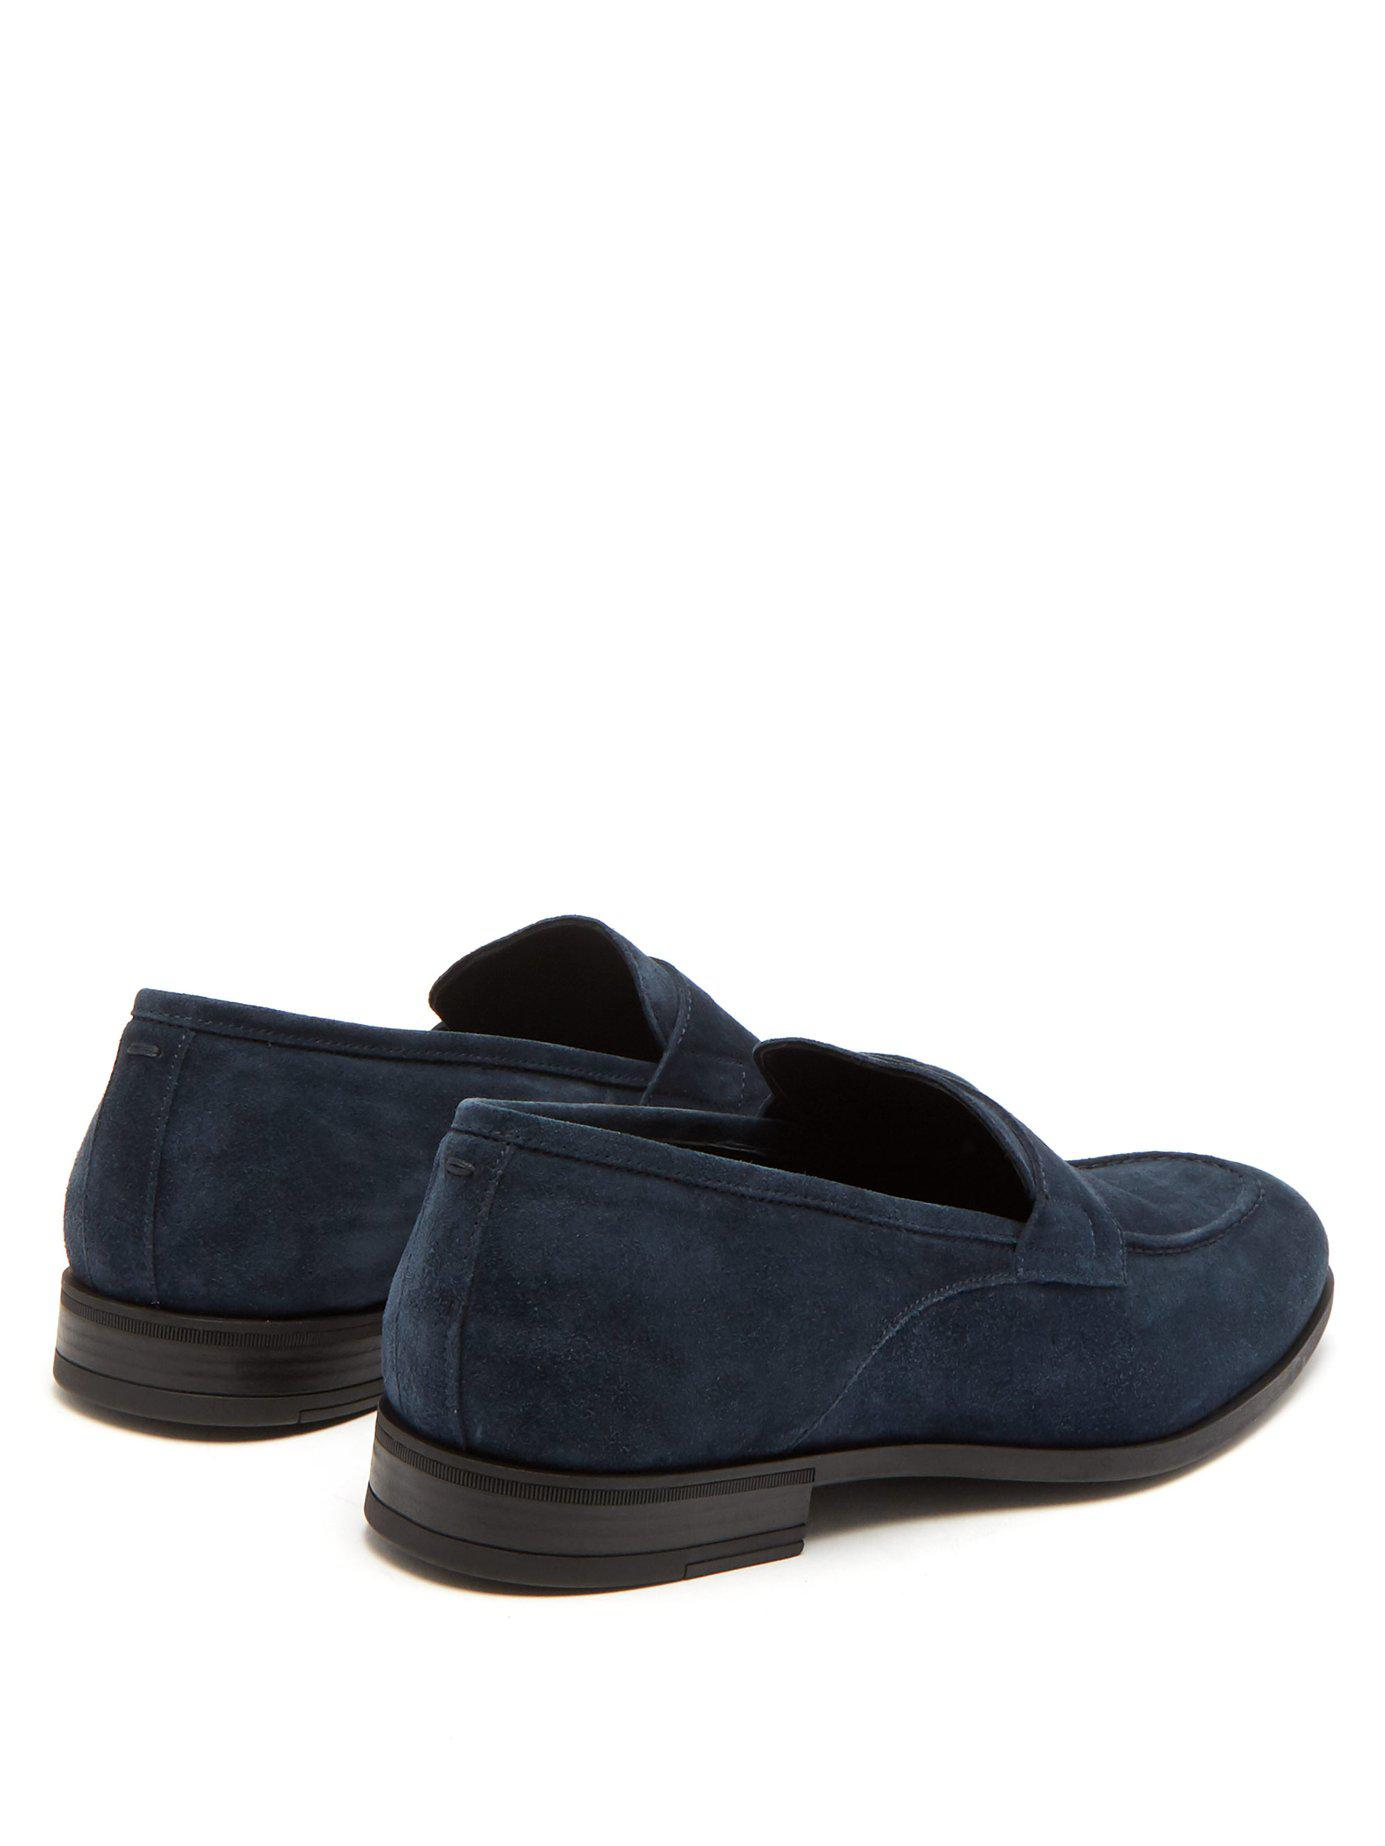 953485f9937 Lyst - Harry s Of London Clive Suede Loafers in Blue for Men